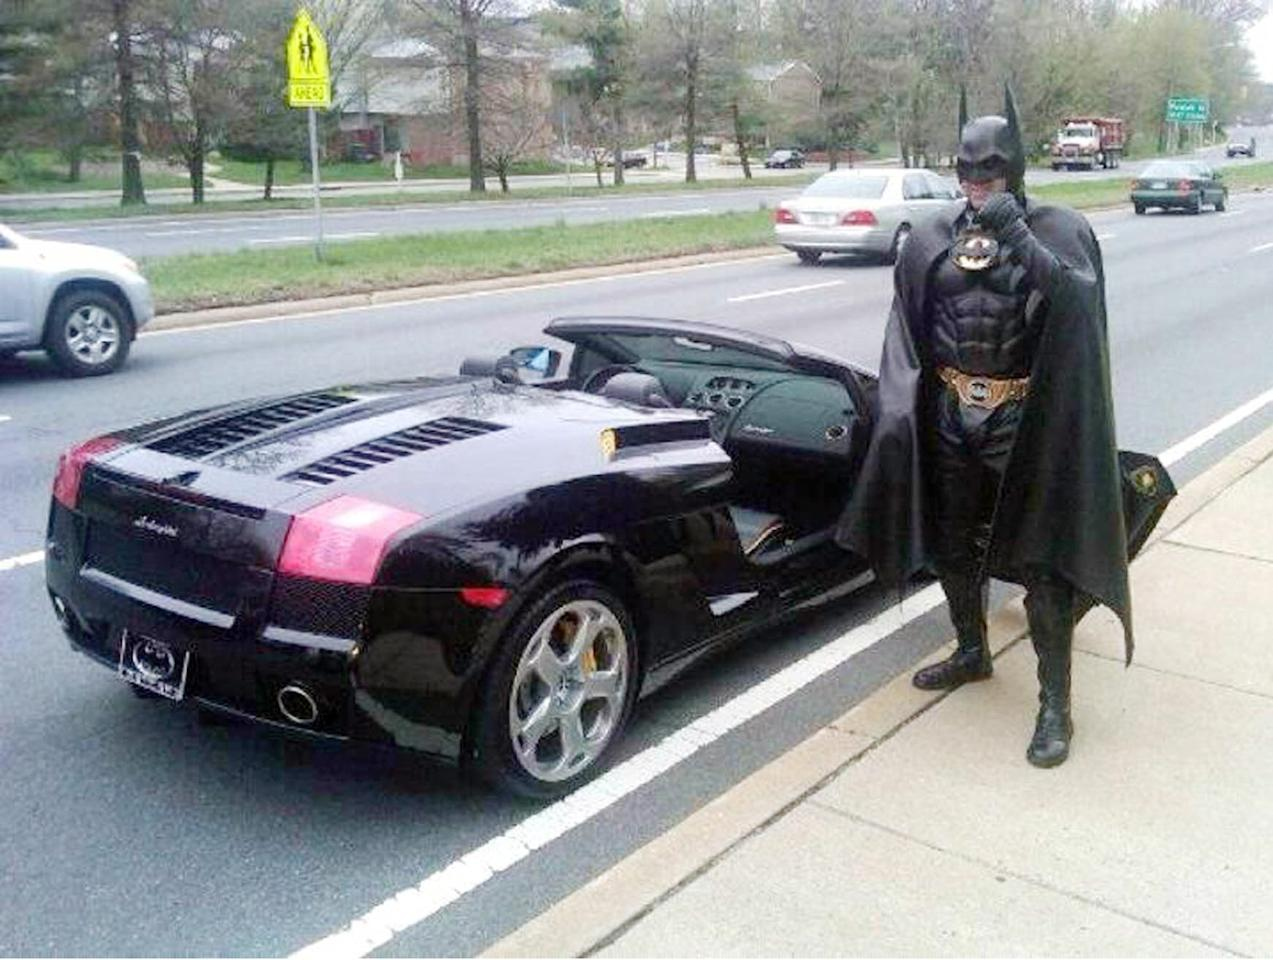 Holy cow Batman! Children's entertainer Lenny Robinson was pulled over by police because he didn't have a proper number plate for his Batmobile - a swish black Lamborghini Gallado. Instead of a licence plate he had a batwing emblem - presumably to let other cars know he was the Caped Crusader. The Batman impersonator was let off with a warning from Maryland police in America (Rex)